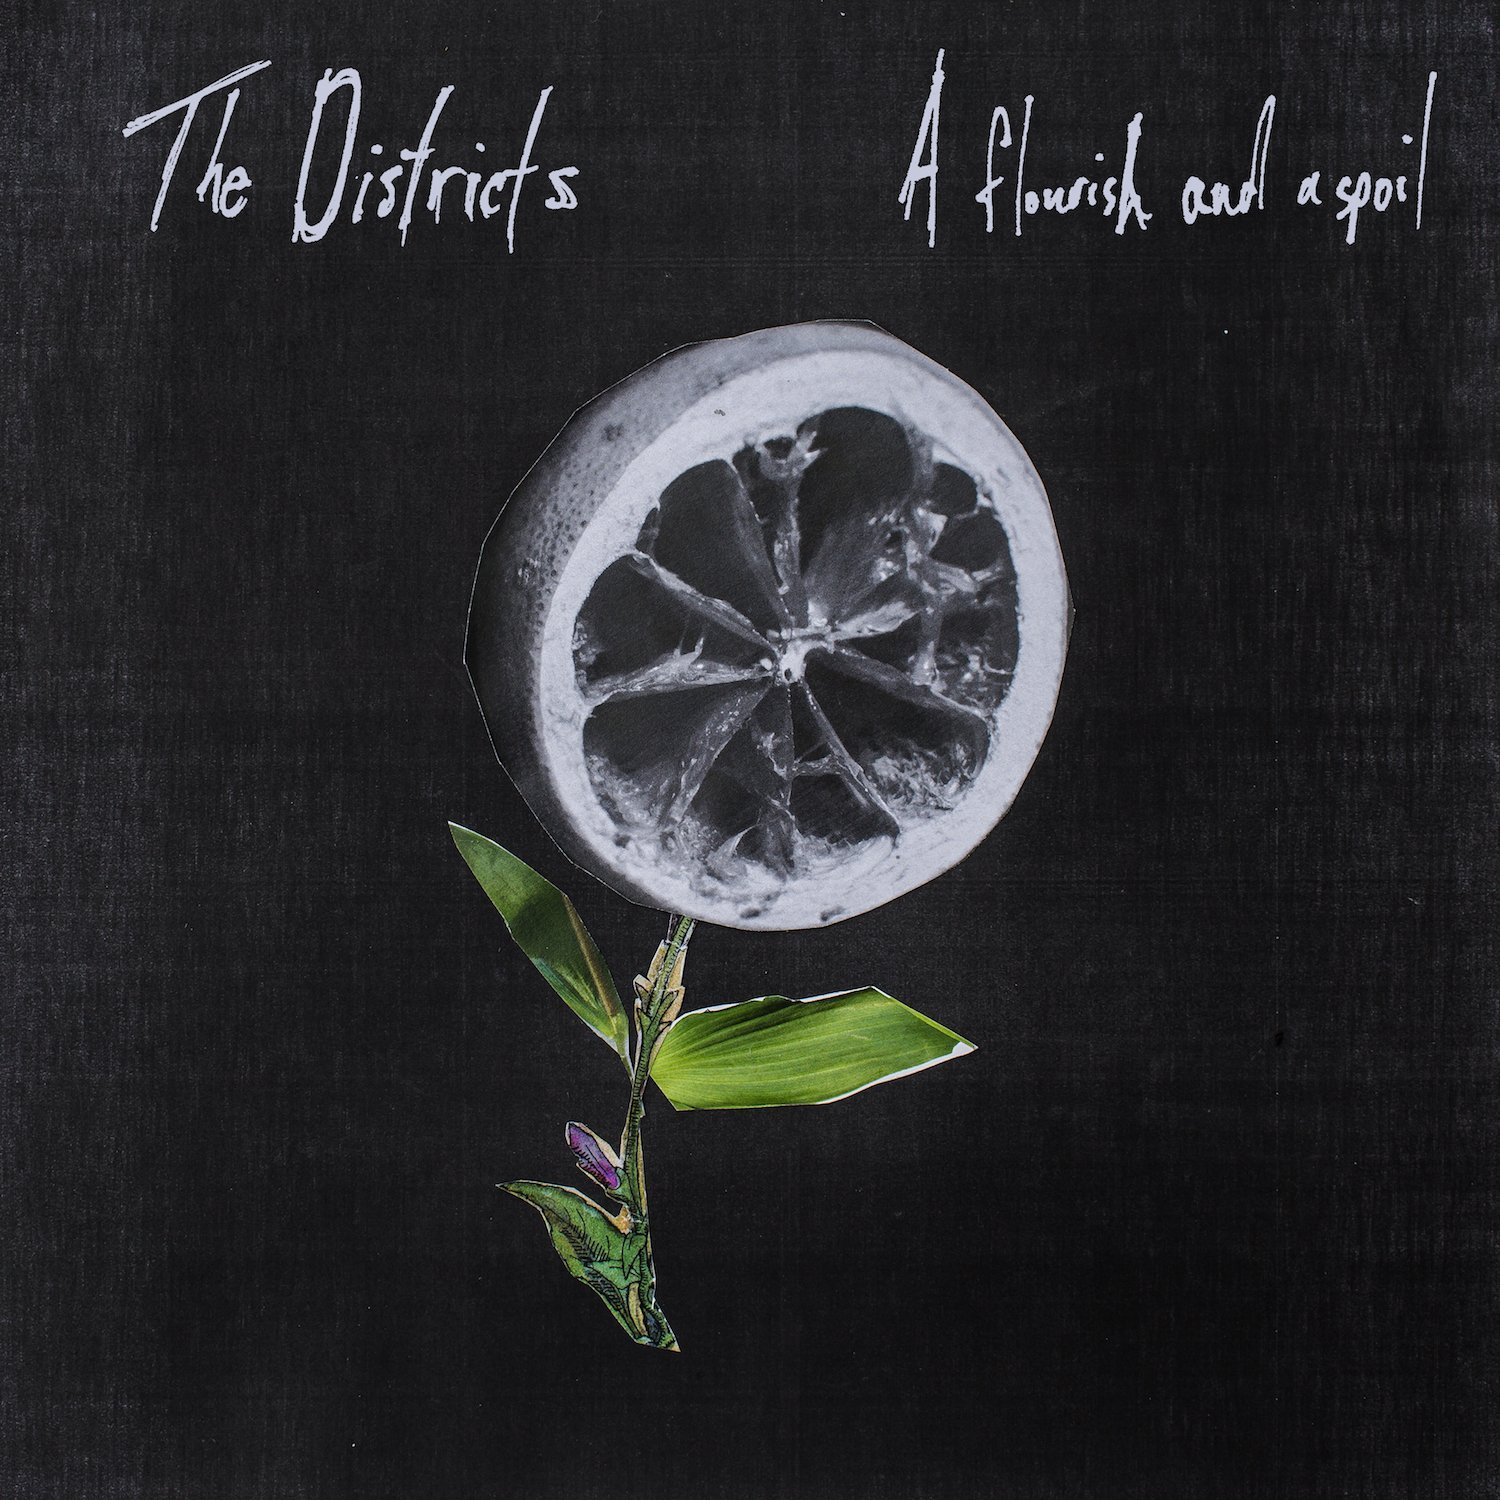 The Districts – A Flourish And A Spoil (Fat Possum Records)